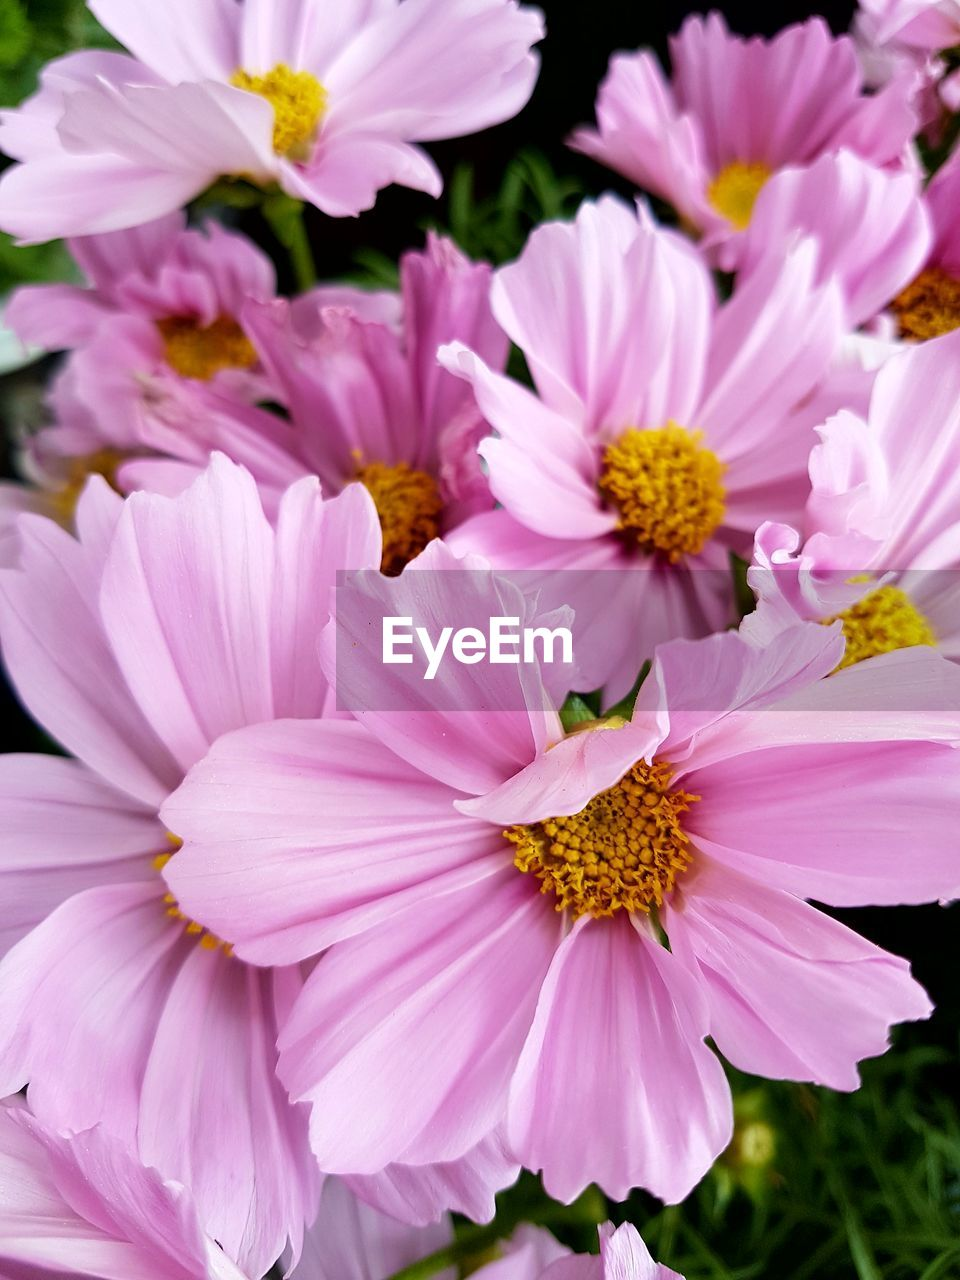 flowering plant, flower, fragility, vulnerability, petal, freshness, plant, beauty in nature, inflorescence, flower head, growth, close-up, pink color, pollen, nature, no people, day, outdoors, focus on foreground, yellow